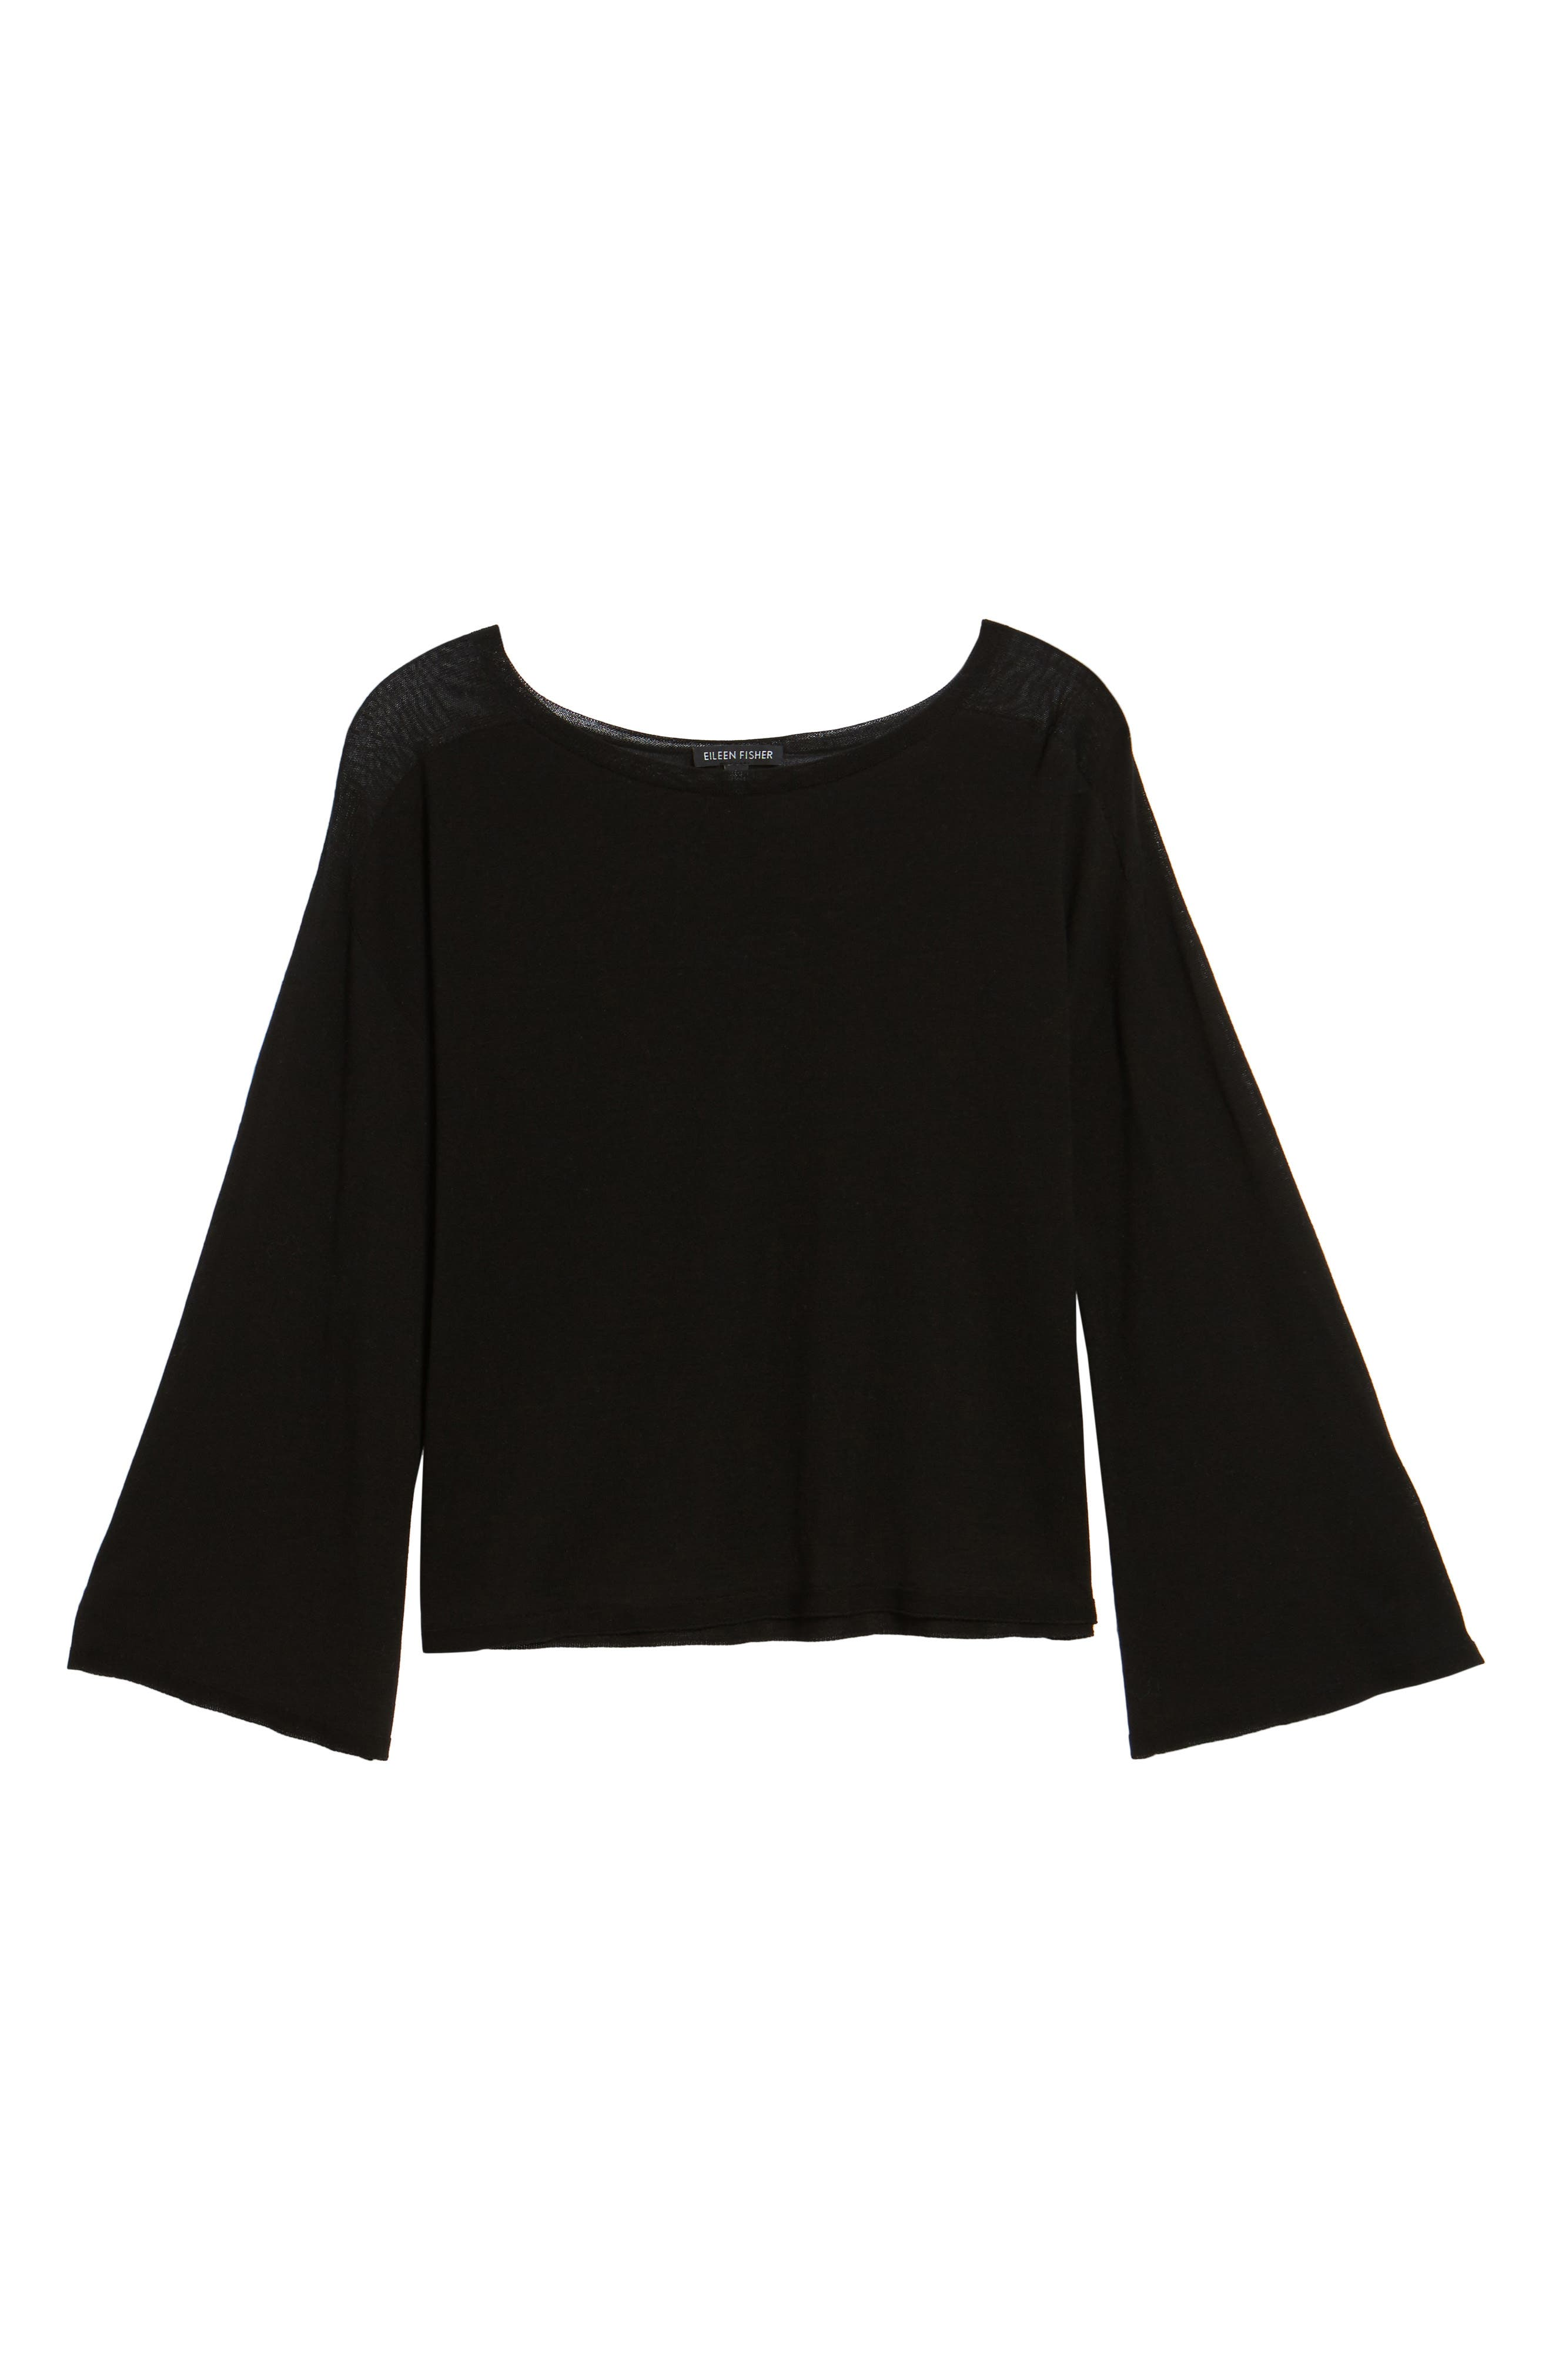 Tencel<sup>®</sup> Lyocell Knit Sweater,                             Alternate thumbnail 6, color,                             001